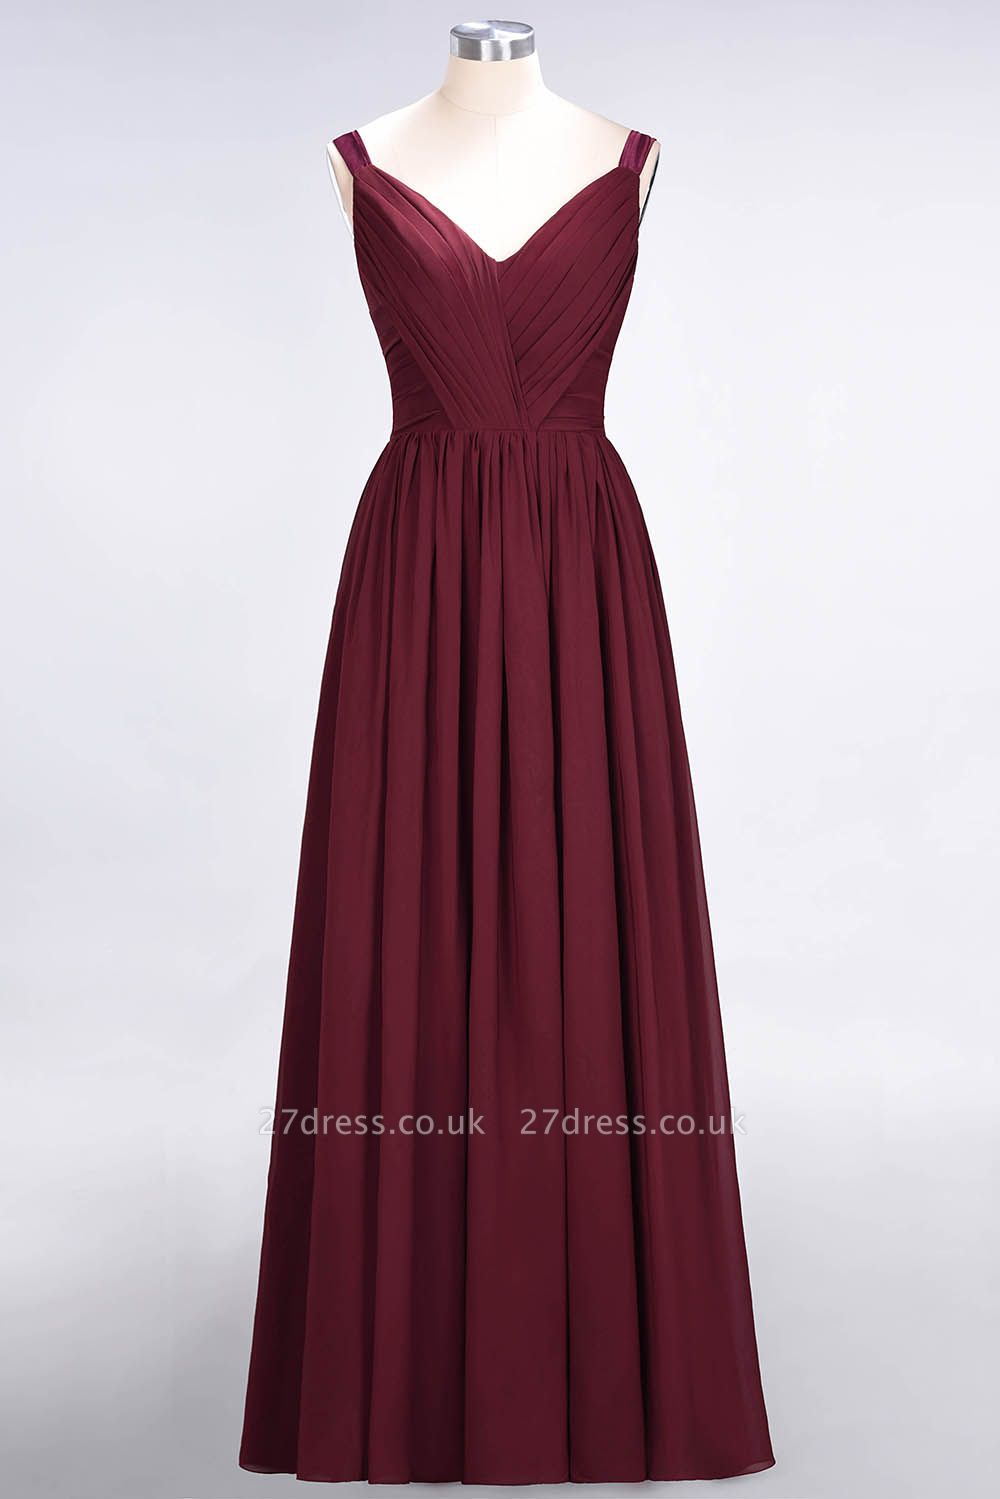 Sexy A-line Flowy Straps Alluring V-neck Sleeveless Backless Floor-Length Bridesmaid Dress UK UK with Ruffles